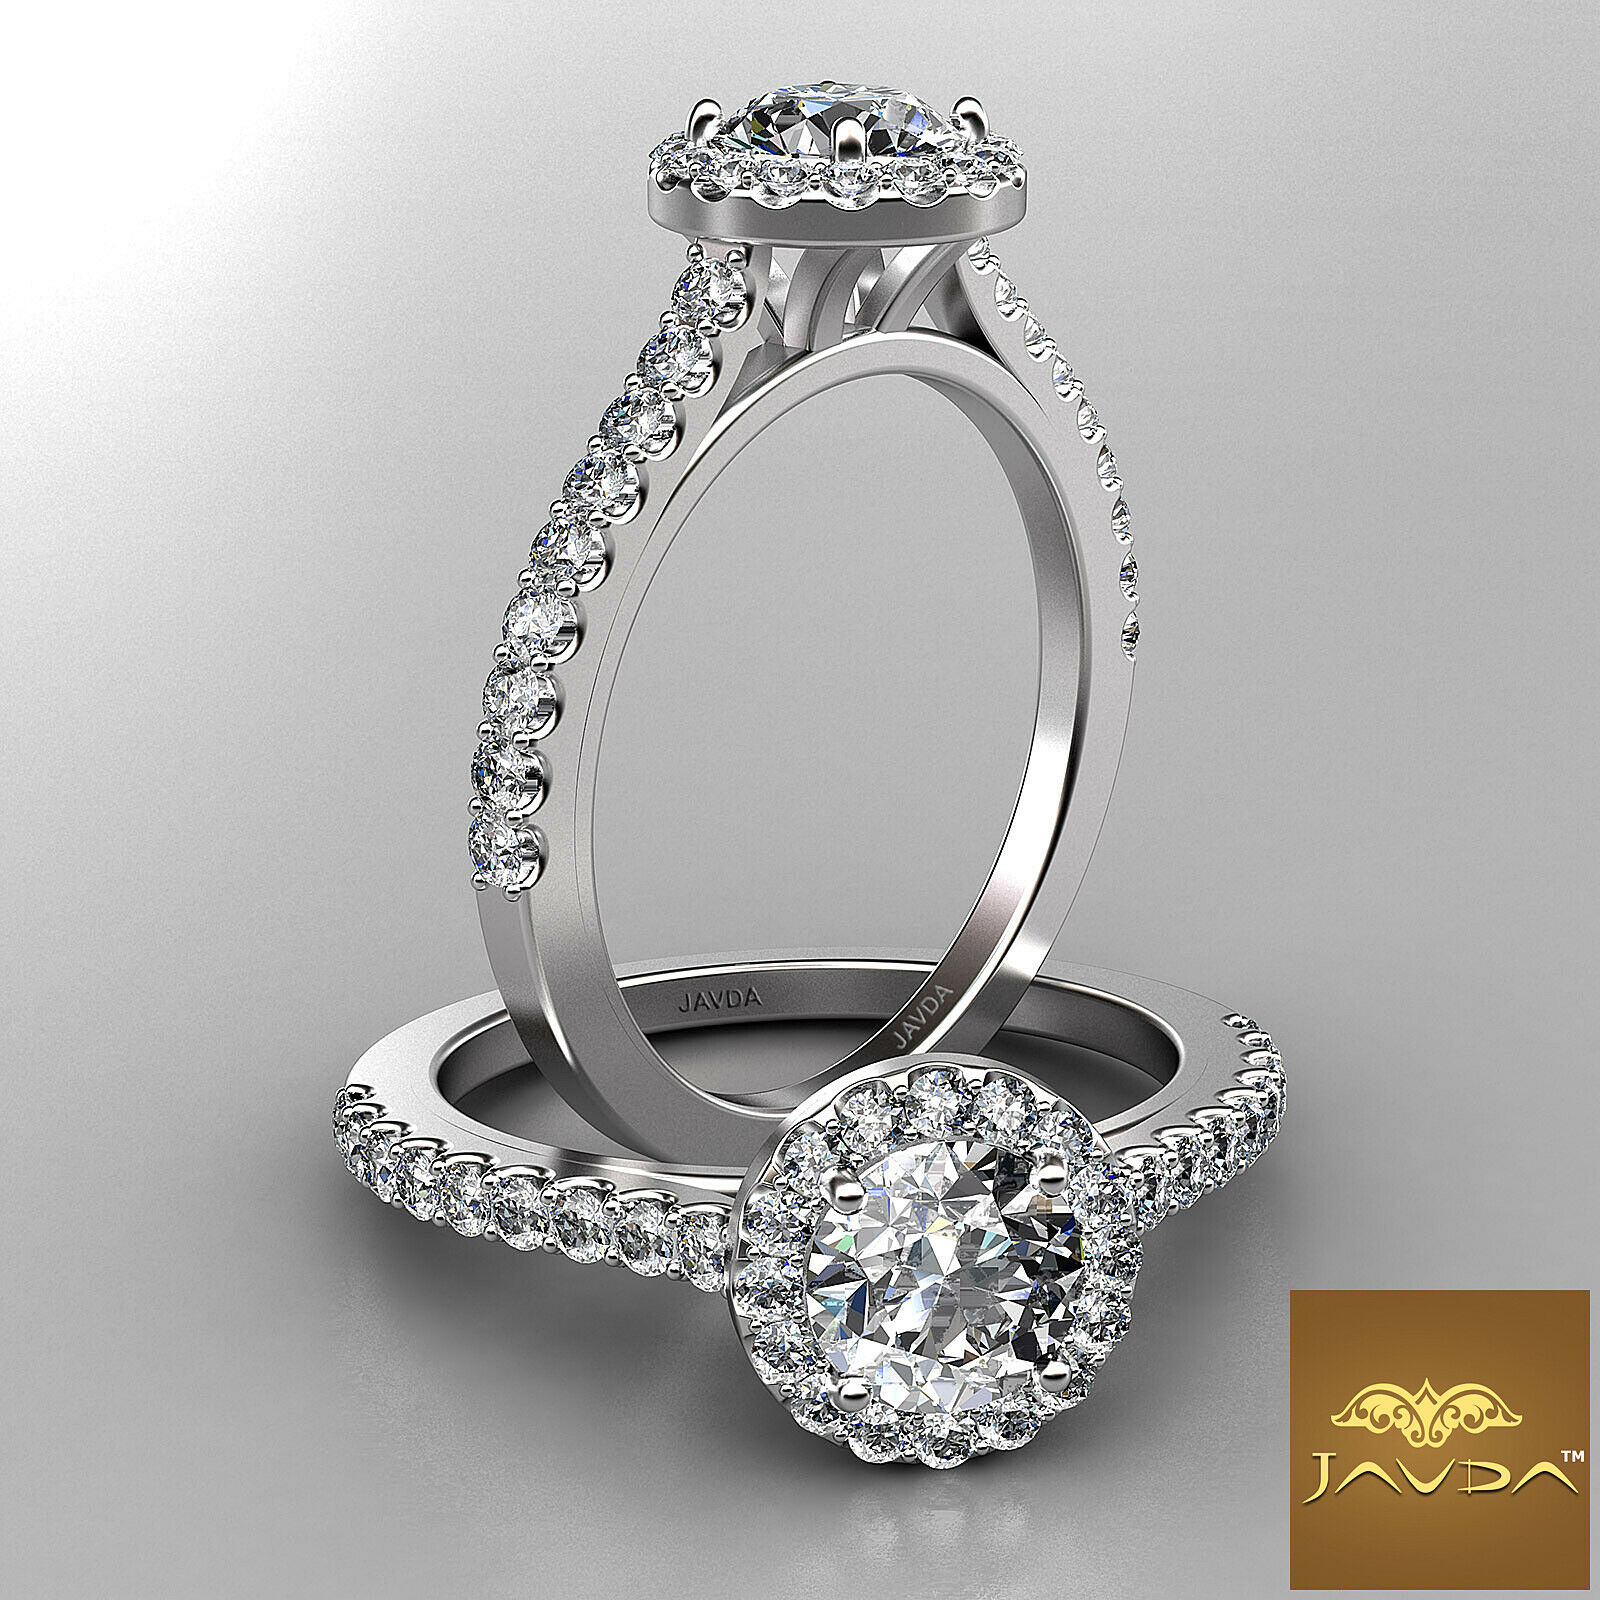 1.21ct Shared Prong Set Halo Round Diamond Engagement Ring GIA D-VVS1 White Gold